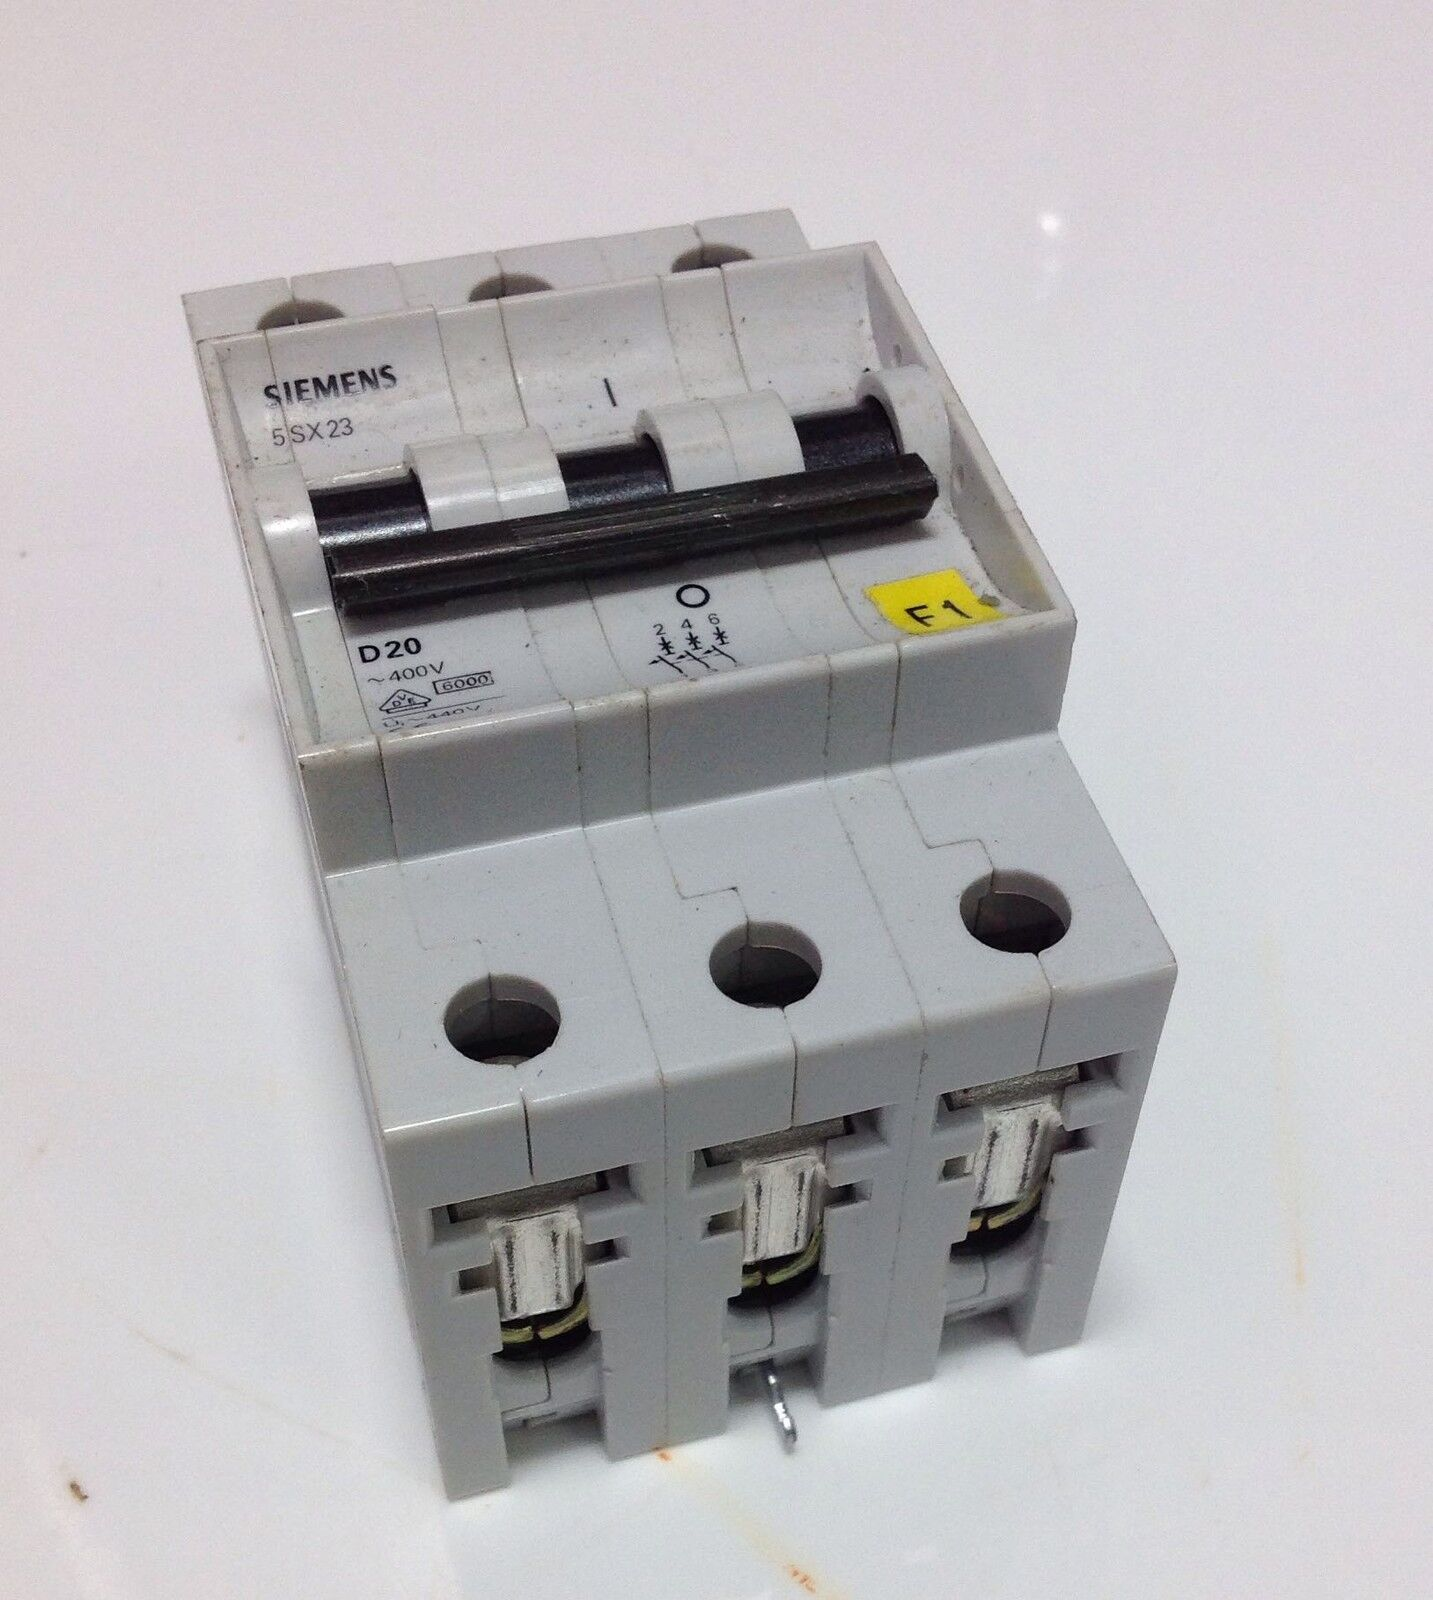 Siemens 400v 3 Pole Circuit Breaker 5sx23 D20 102368 1798 Picclick Details About 5sx21 C5 230 5 Amp 2 Of See More